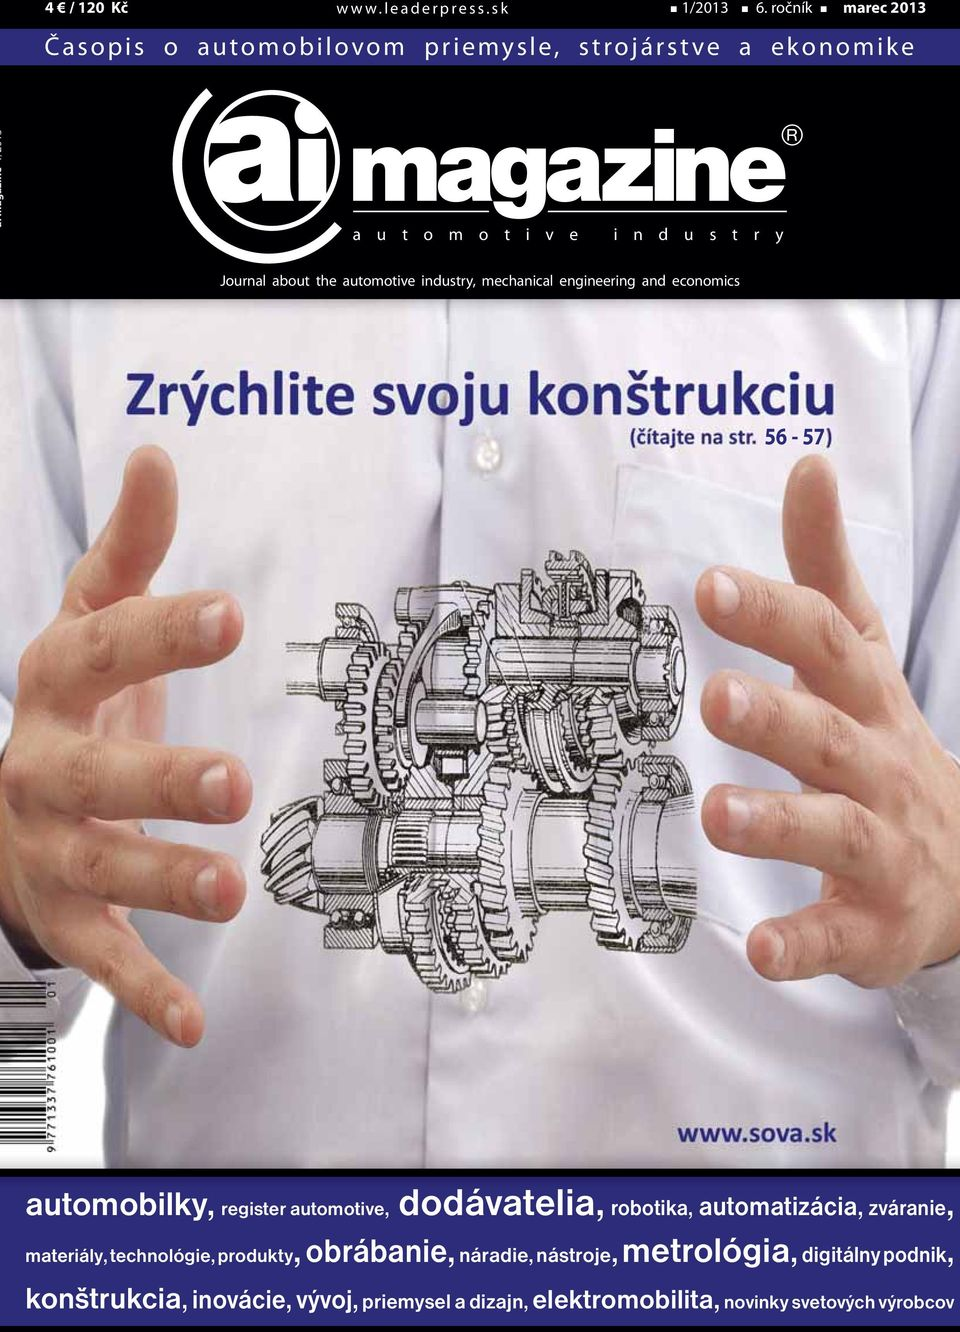 Journal about the automotive industry, mechanical engineering and economics 56-57 automobilky, register automotive, dodávatelia,